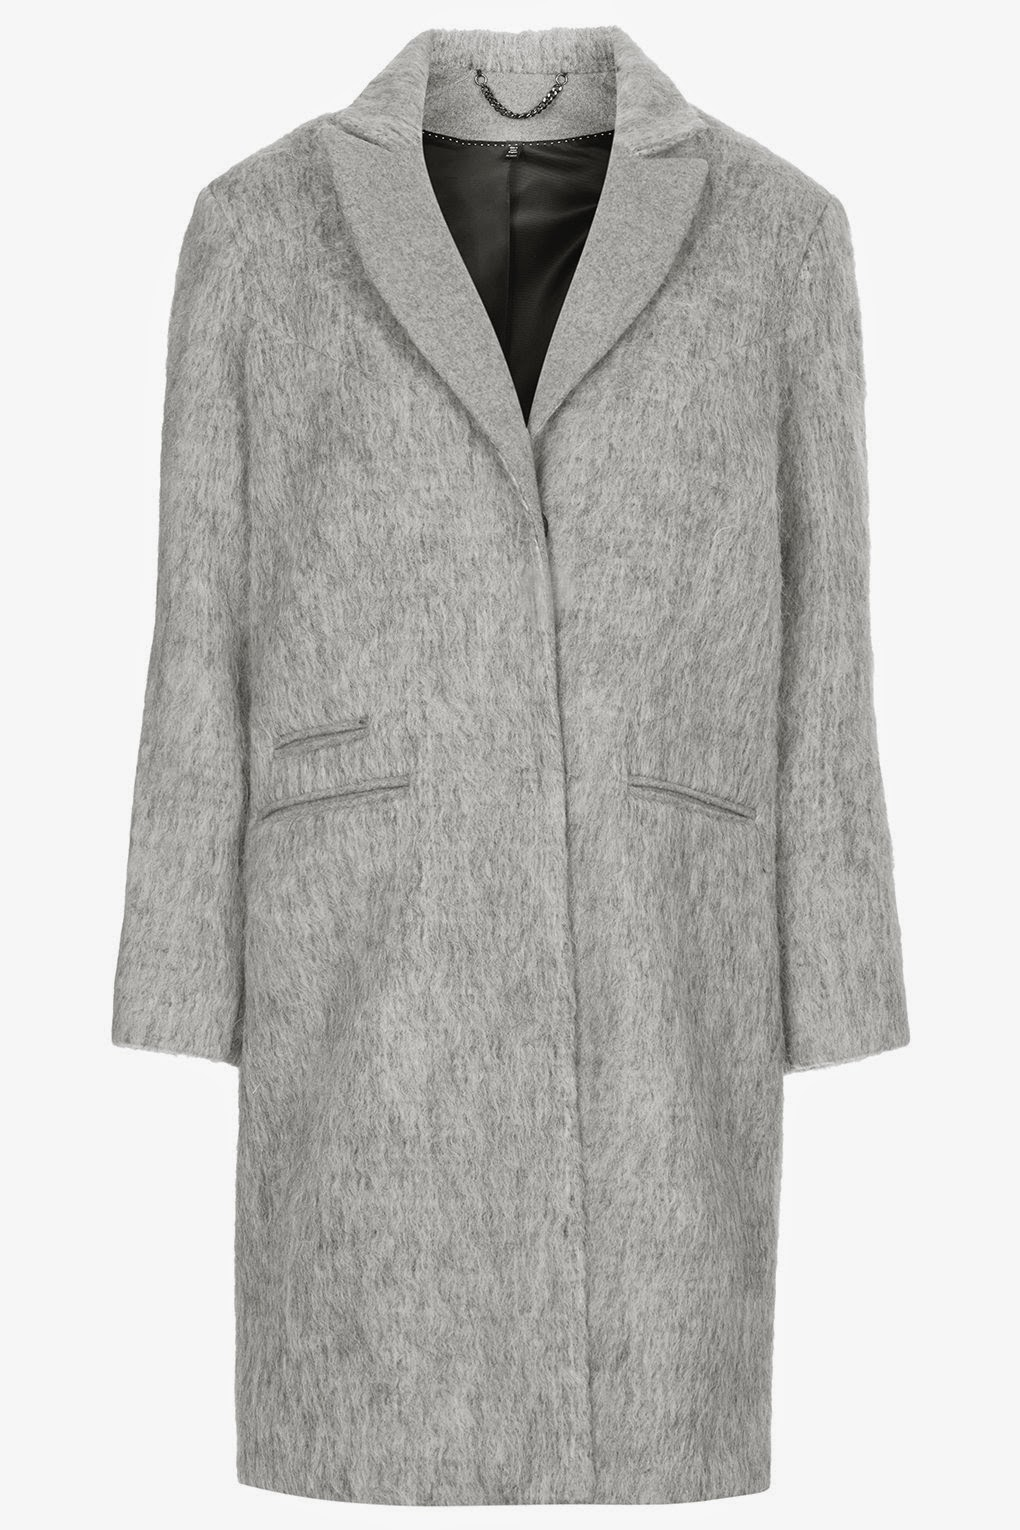 grey fluffy coat topshop